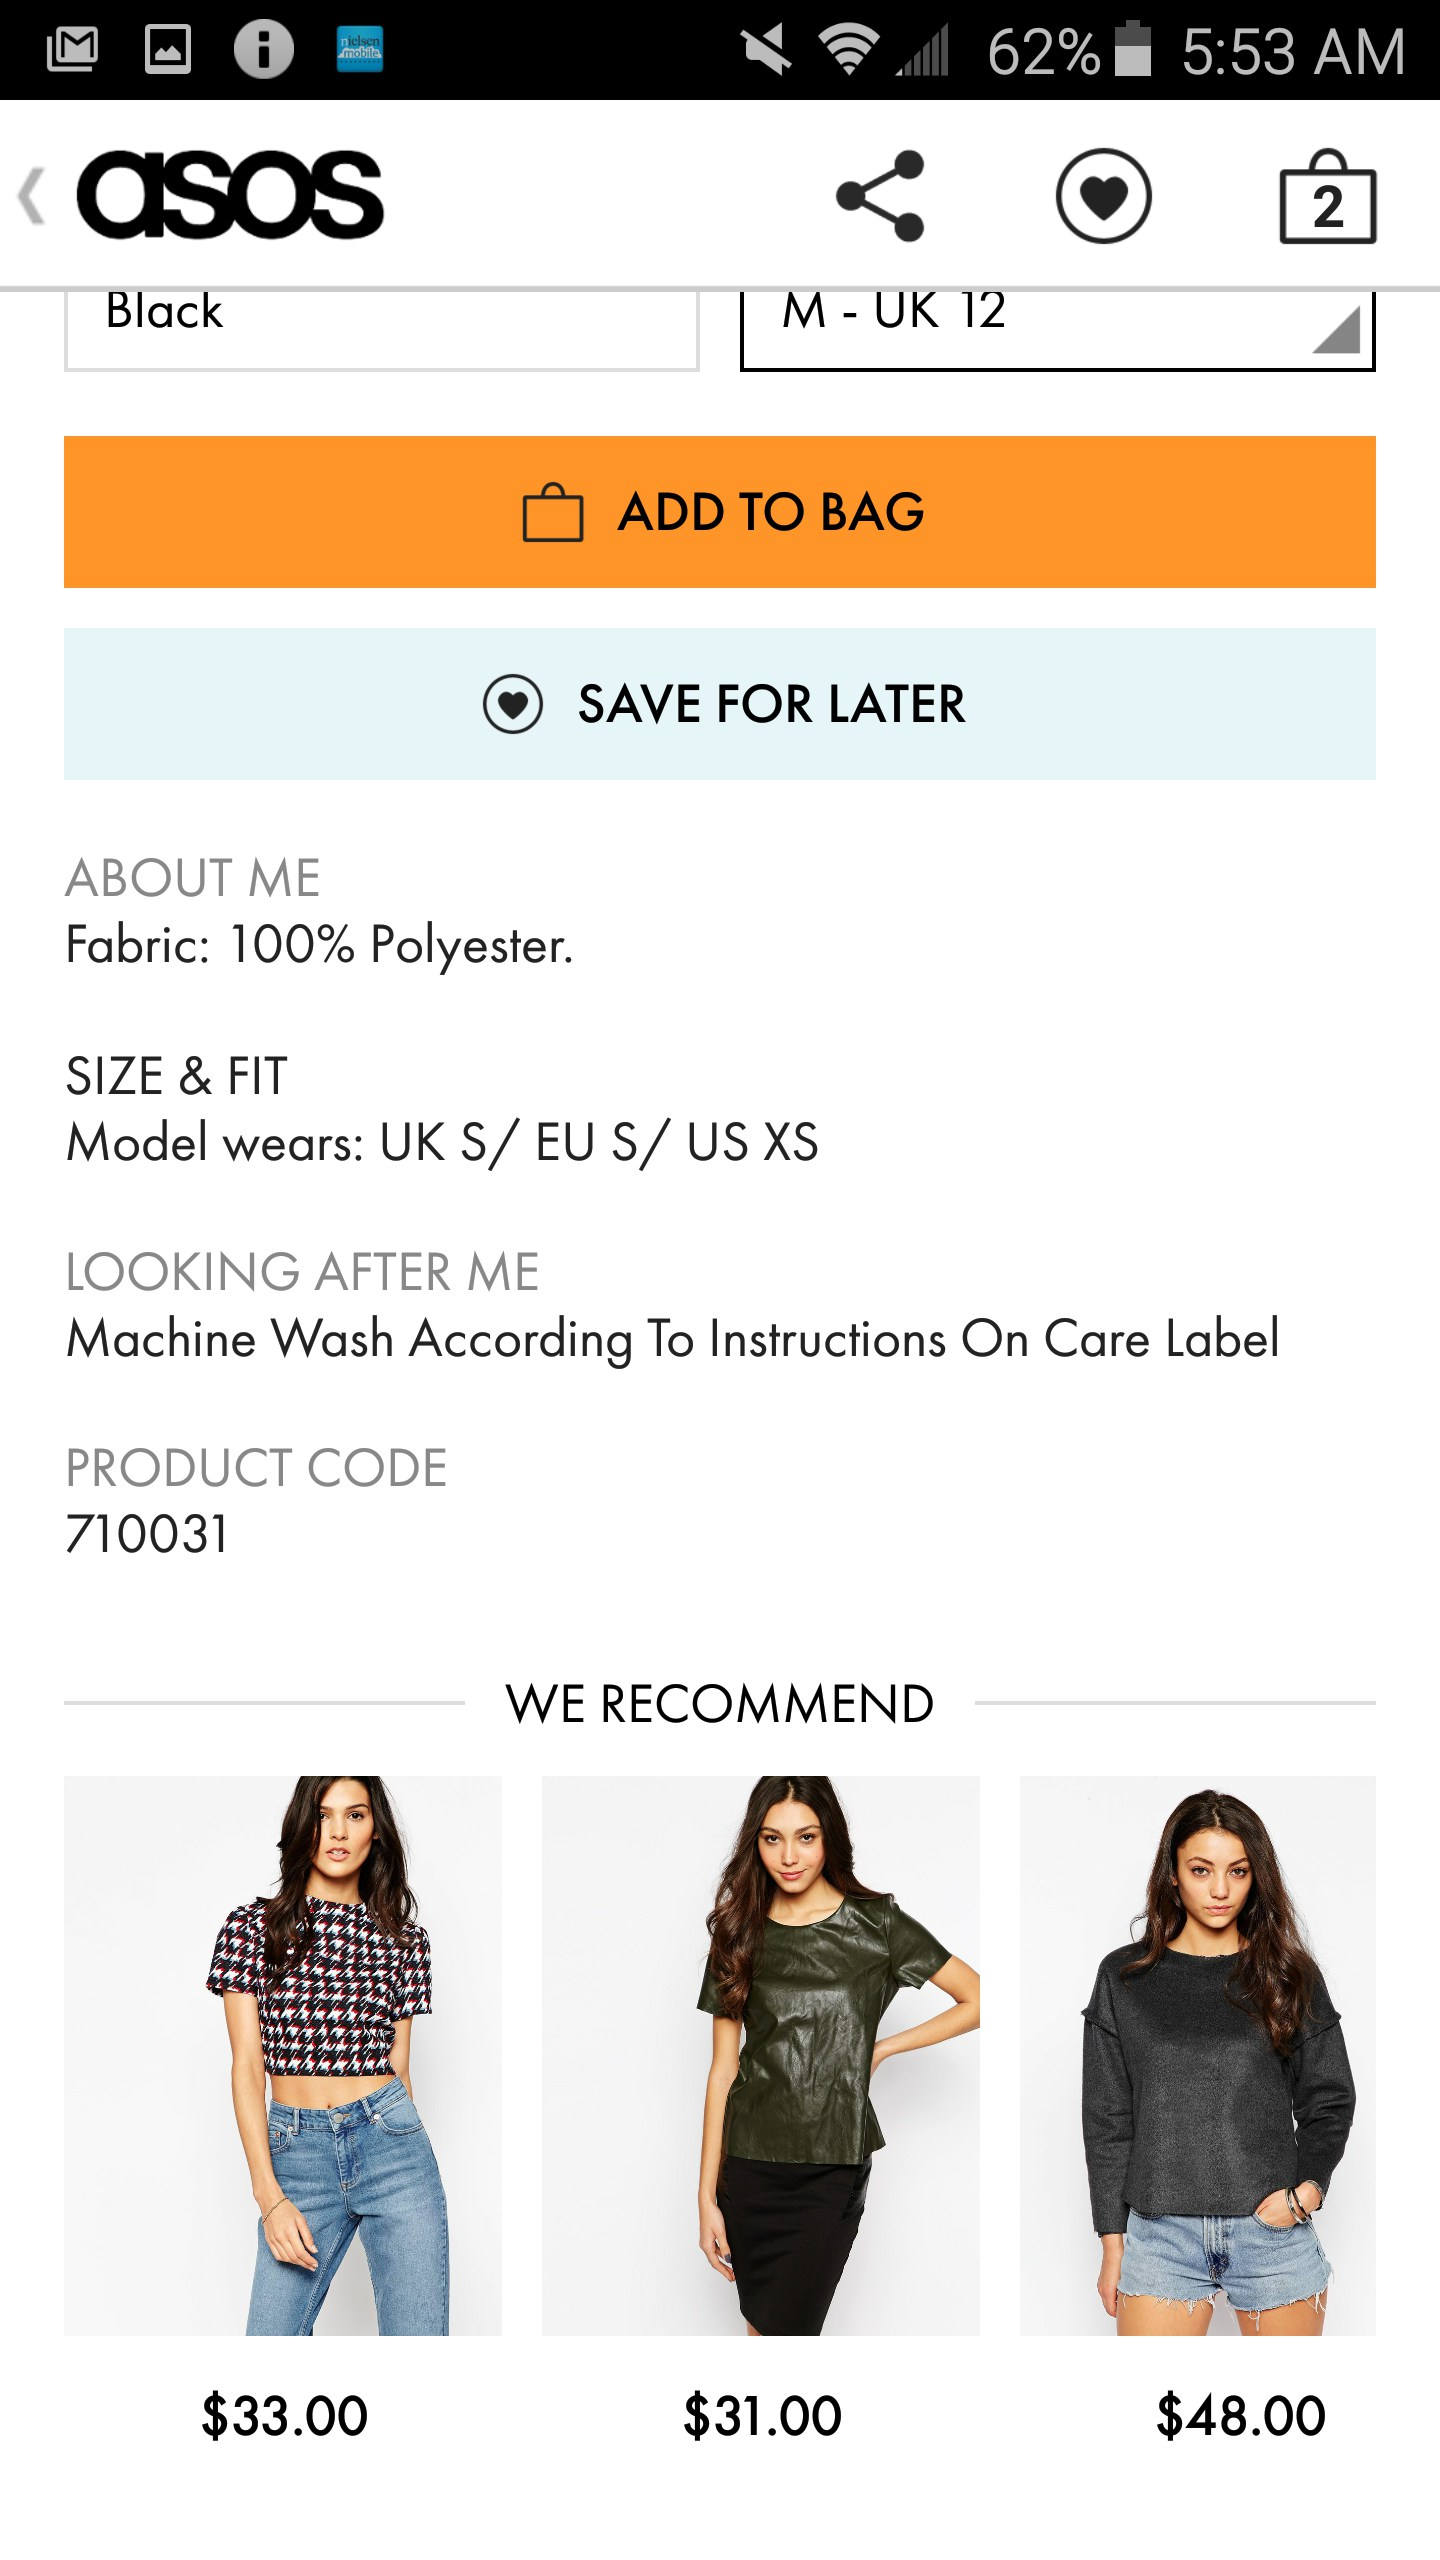 Asos For Amazon Kindle Fire Hd 2018 Free Download Soft For Android